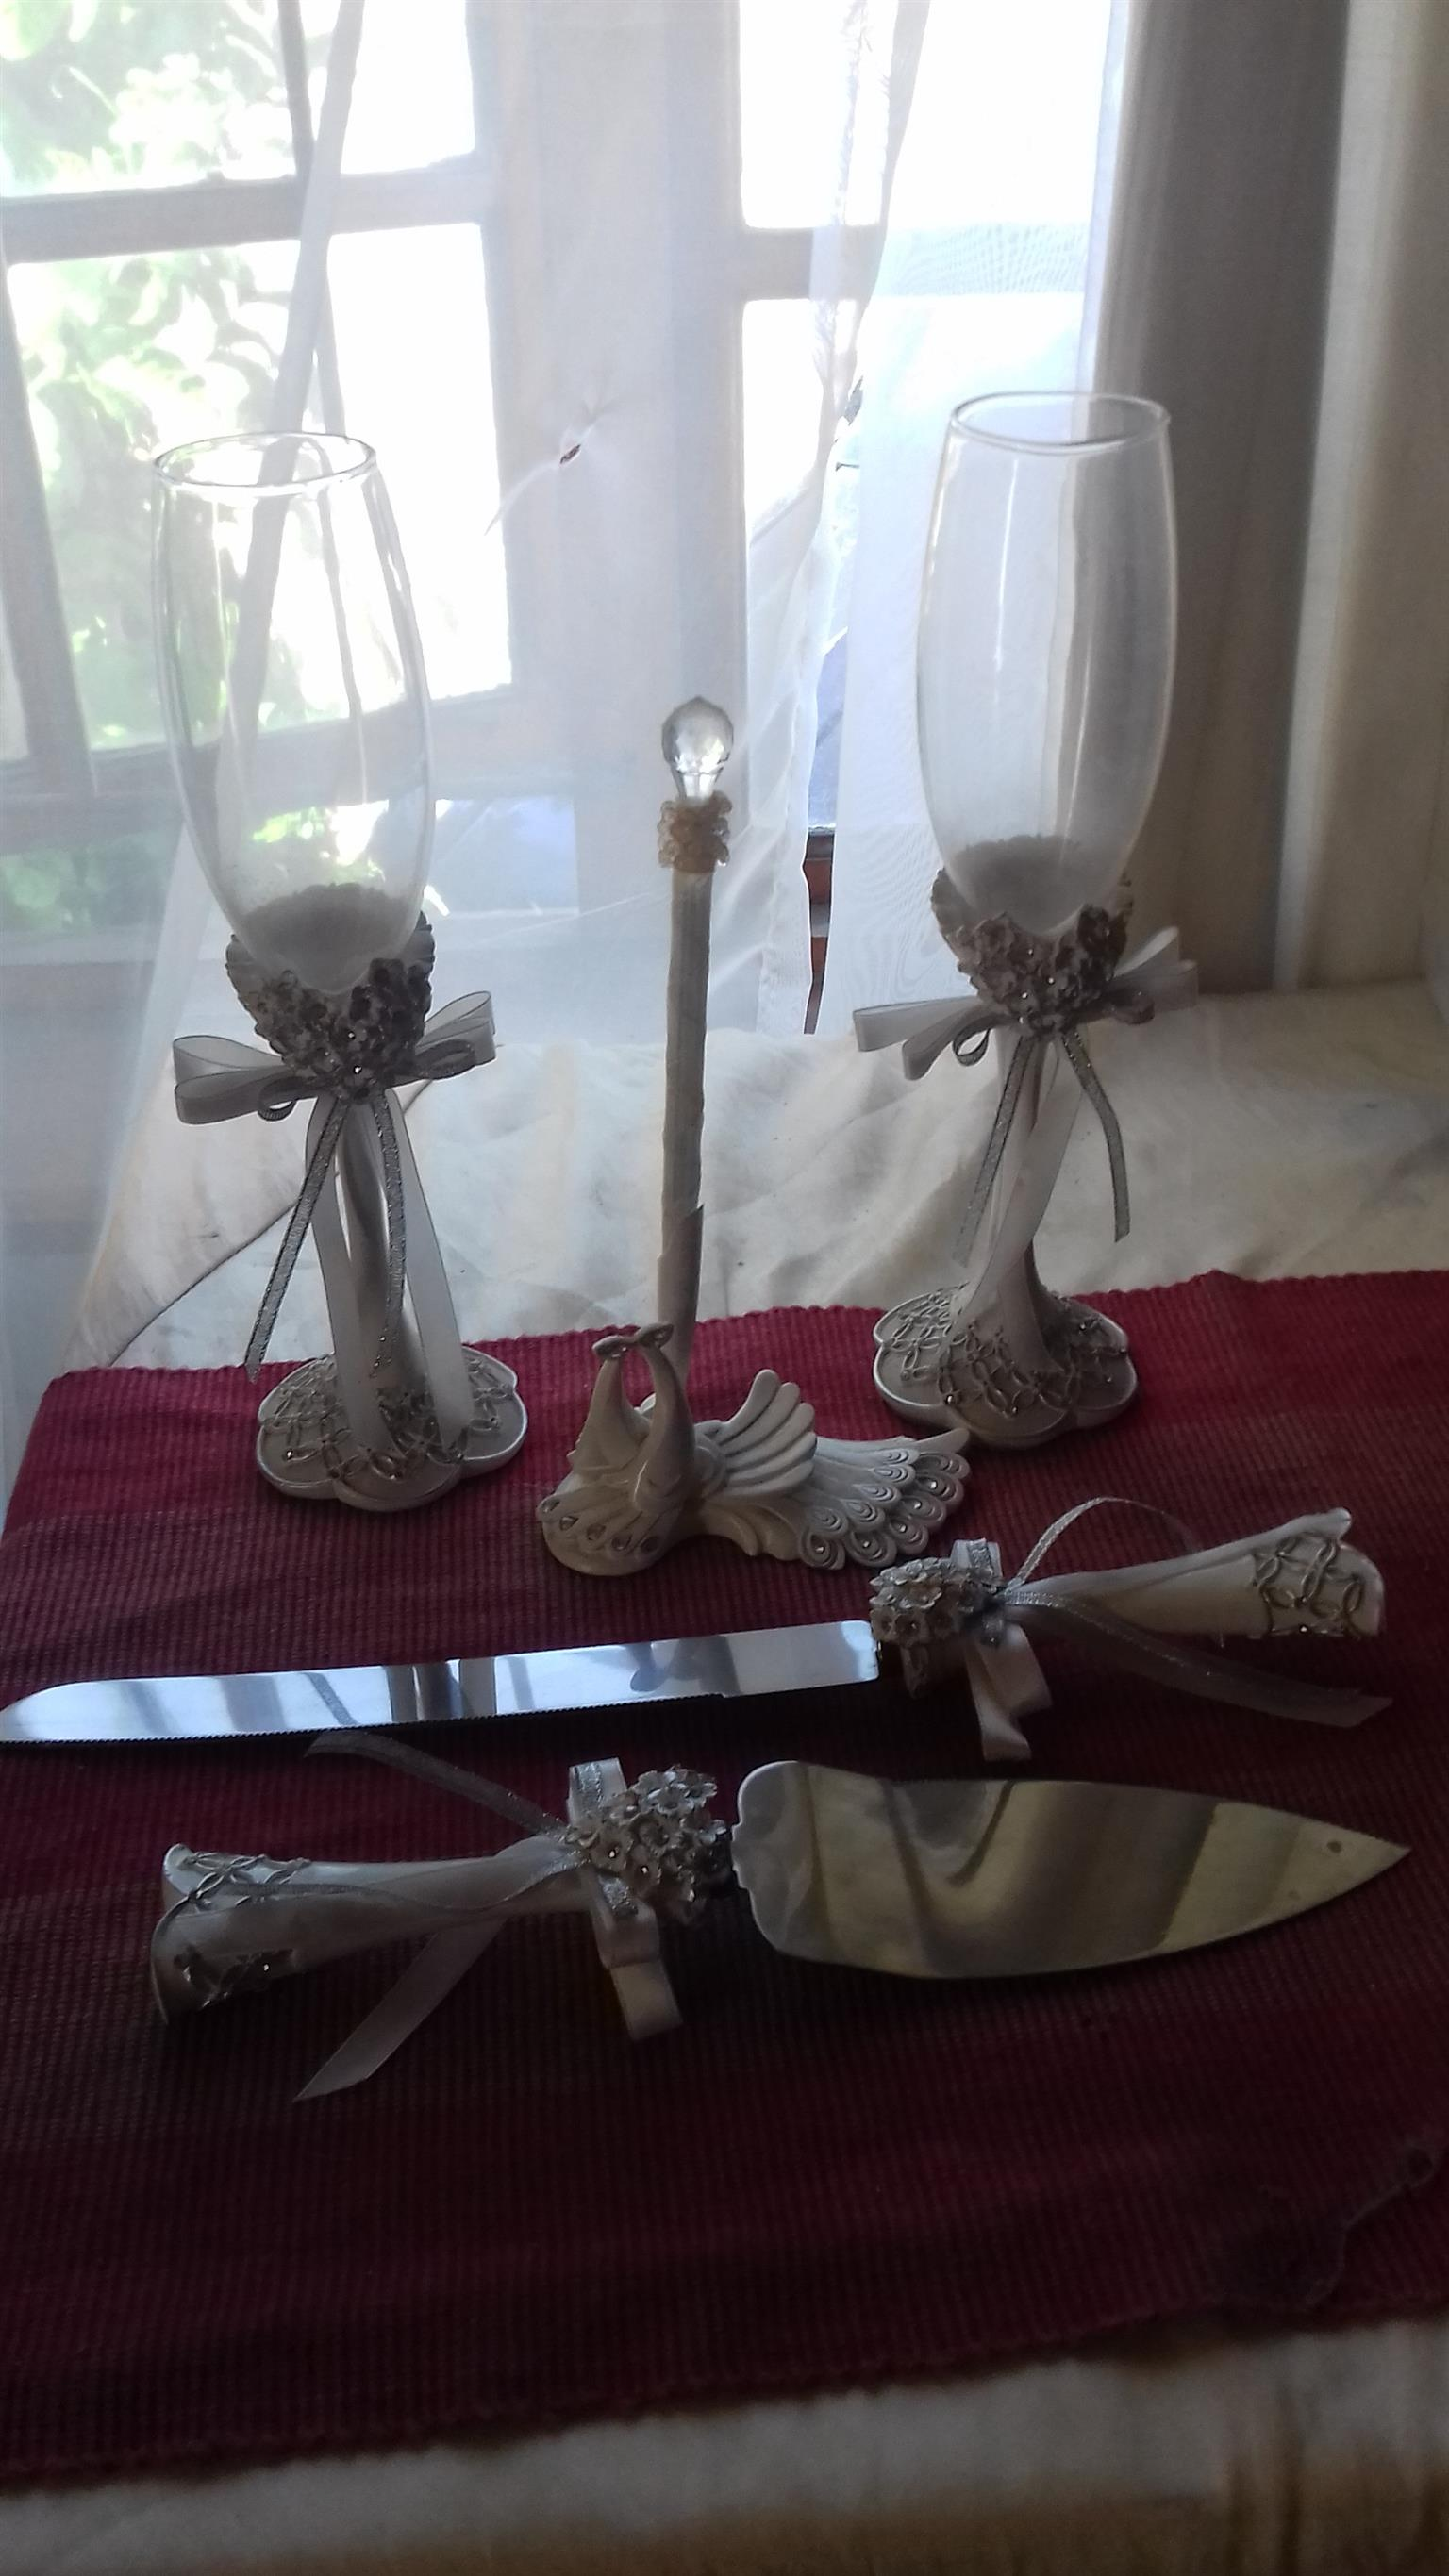 Bride and Groom drinking glasses, cake set and signing pen – R350